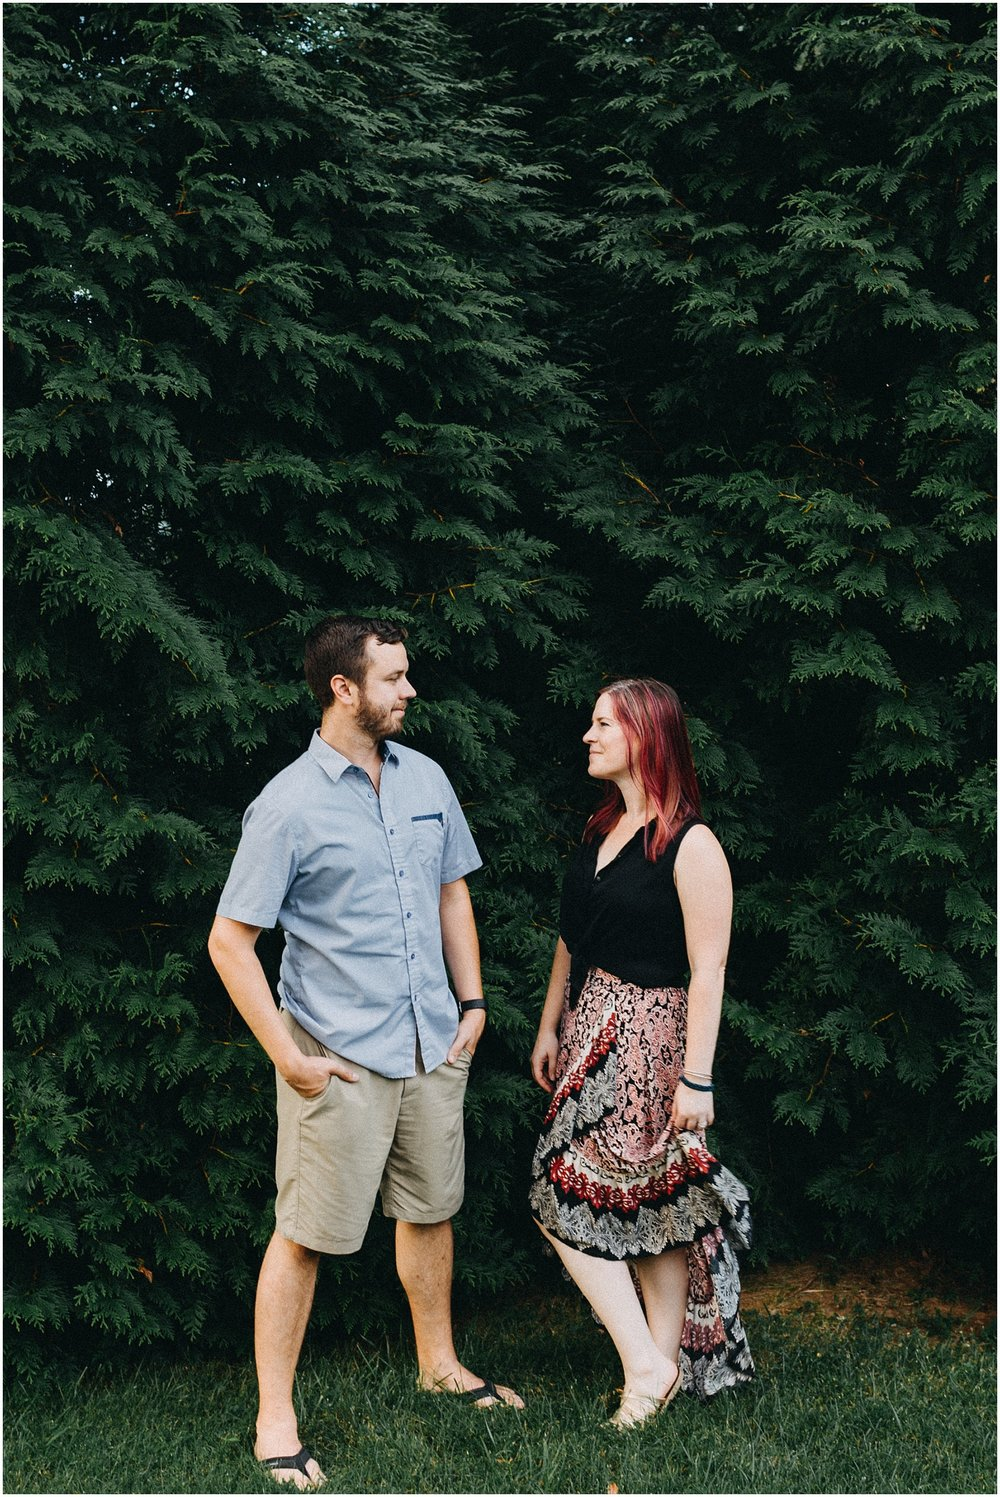 lifestyle-anniversary-engagement-photo session-rv-camping-road trip-vintage trailer-camping-outdoor photos_0265.jpg